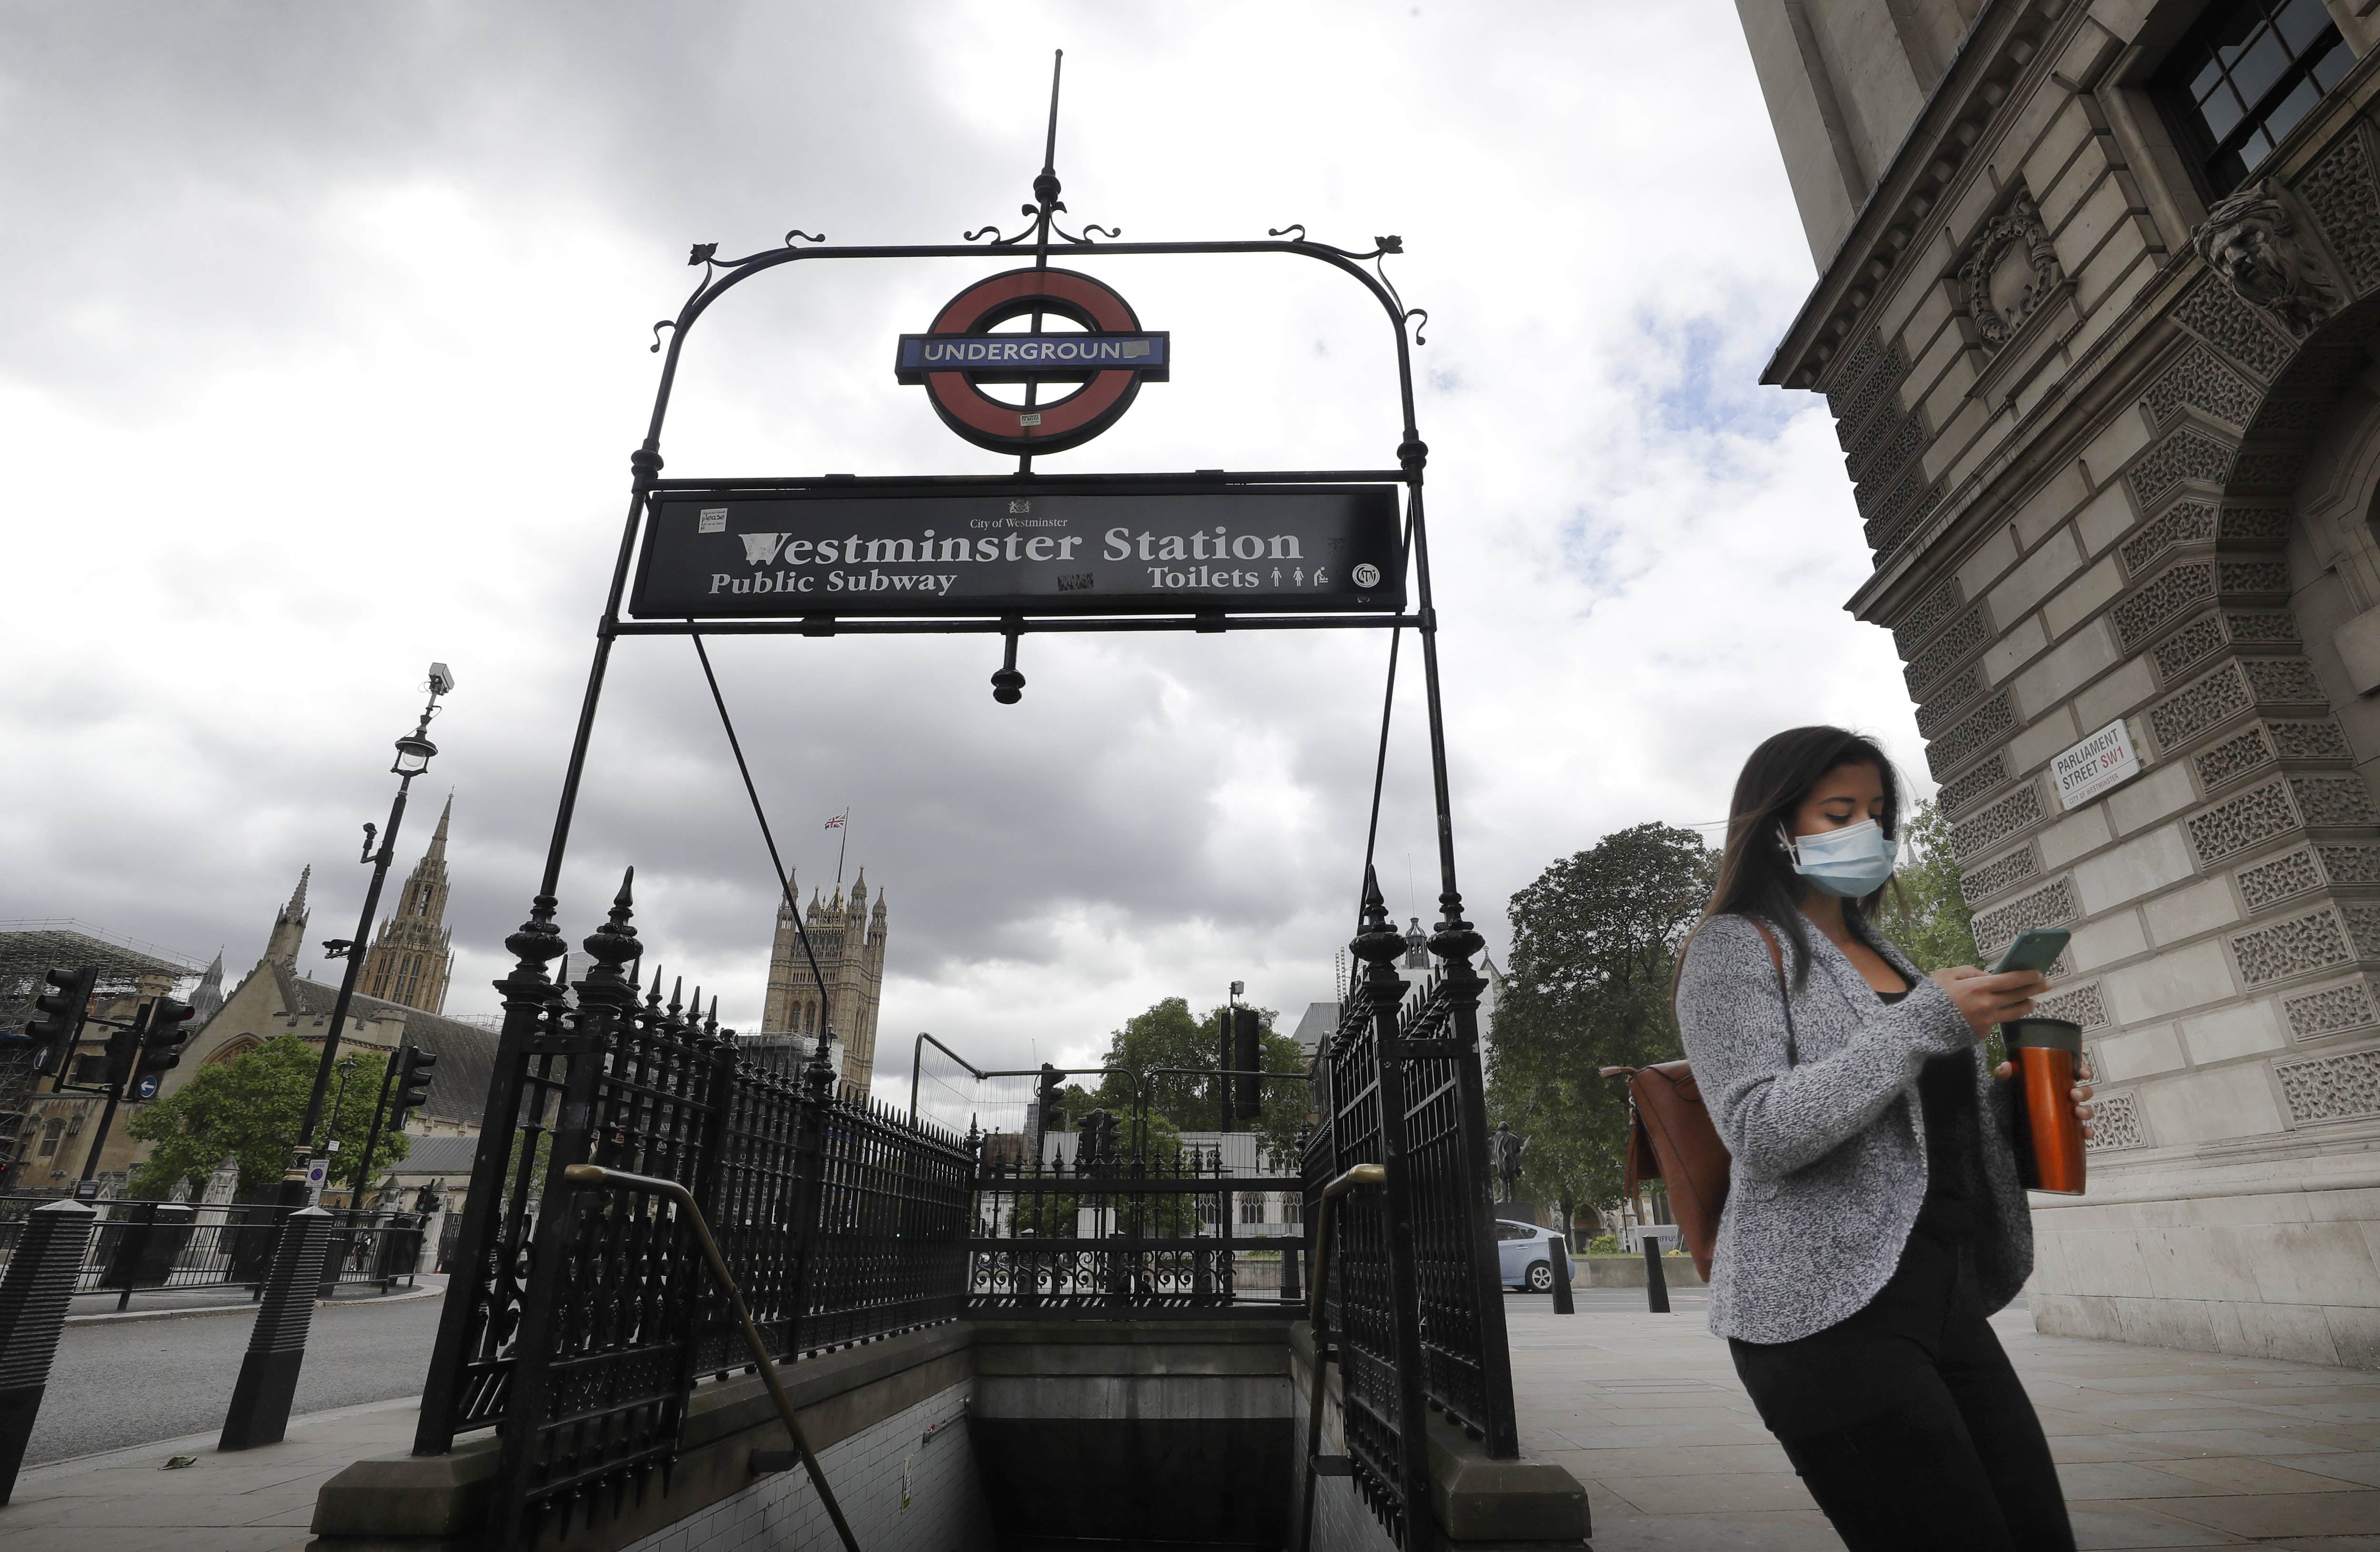 A woman wears a mask as she passes Westminster Station in London, Friday, June 5, 2020.  It will become compulsory to wear face coverings whilst using public transport in England from Monday June 15. (AP Photo/Kirsty Wigglesworth)